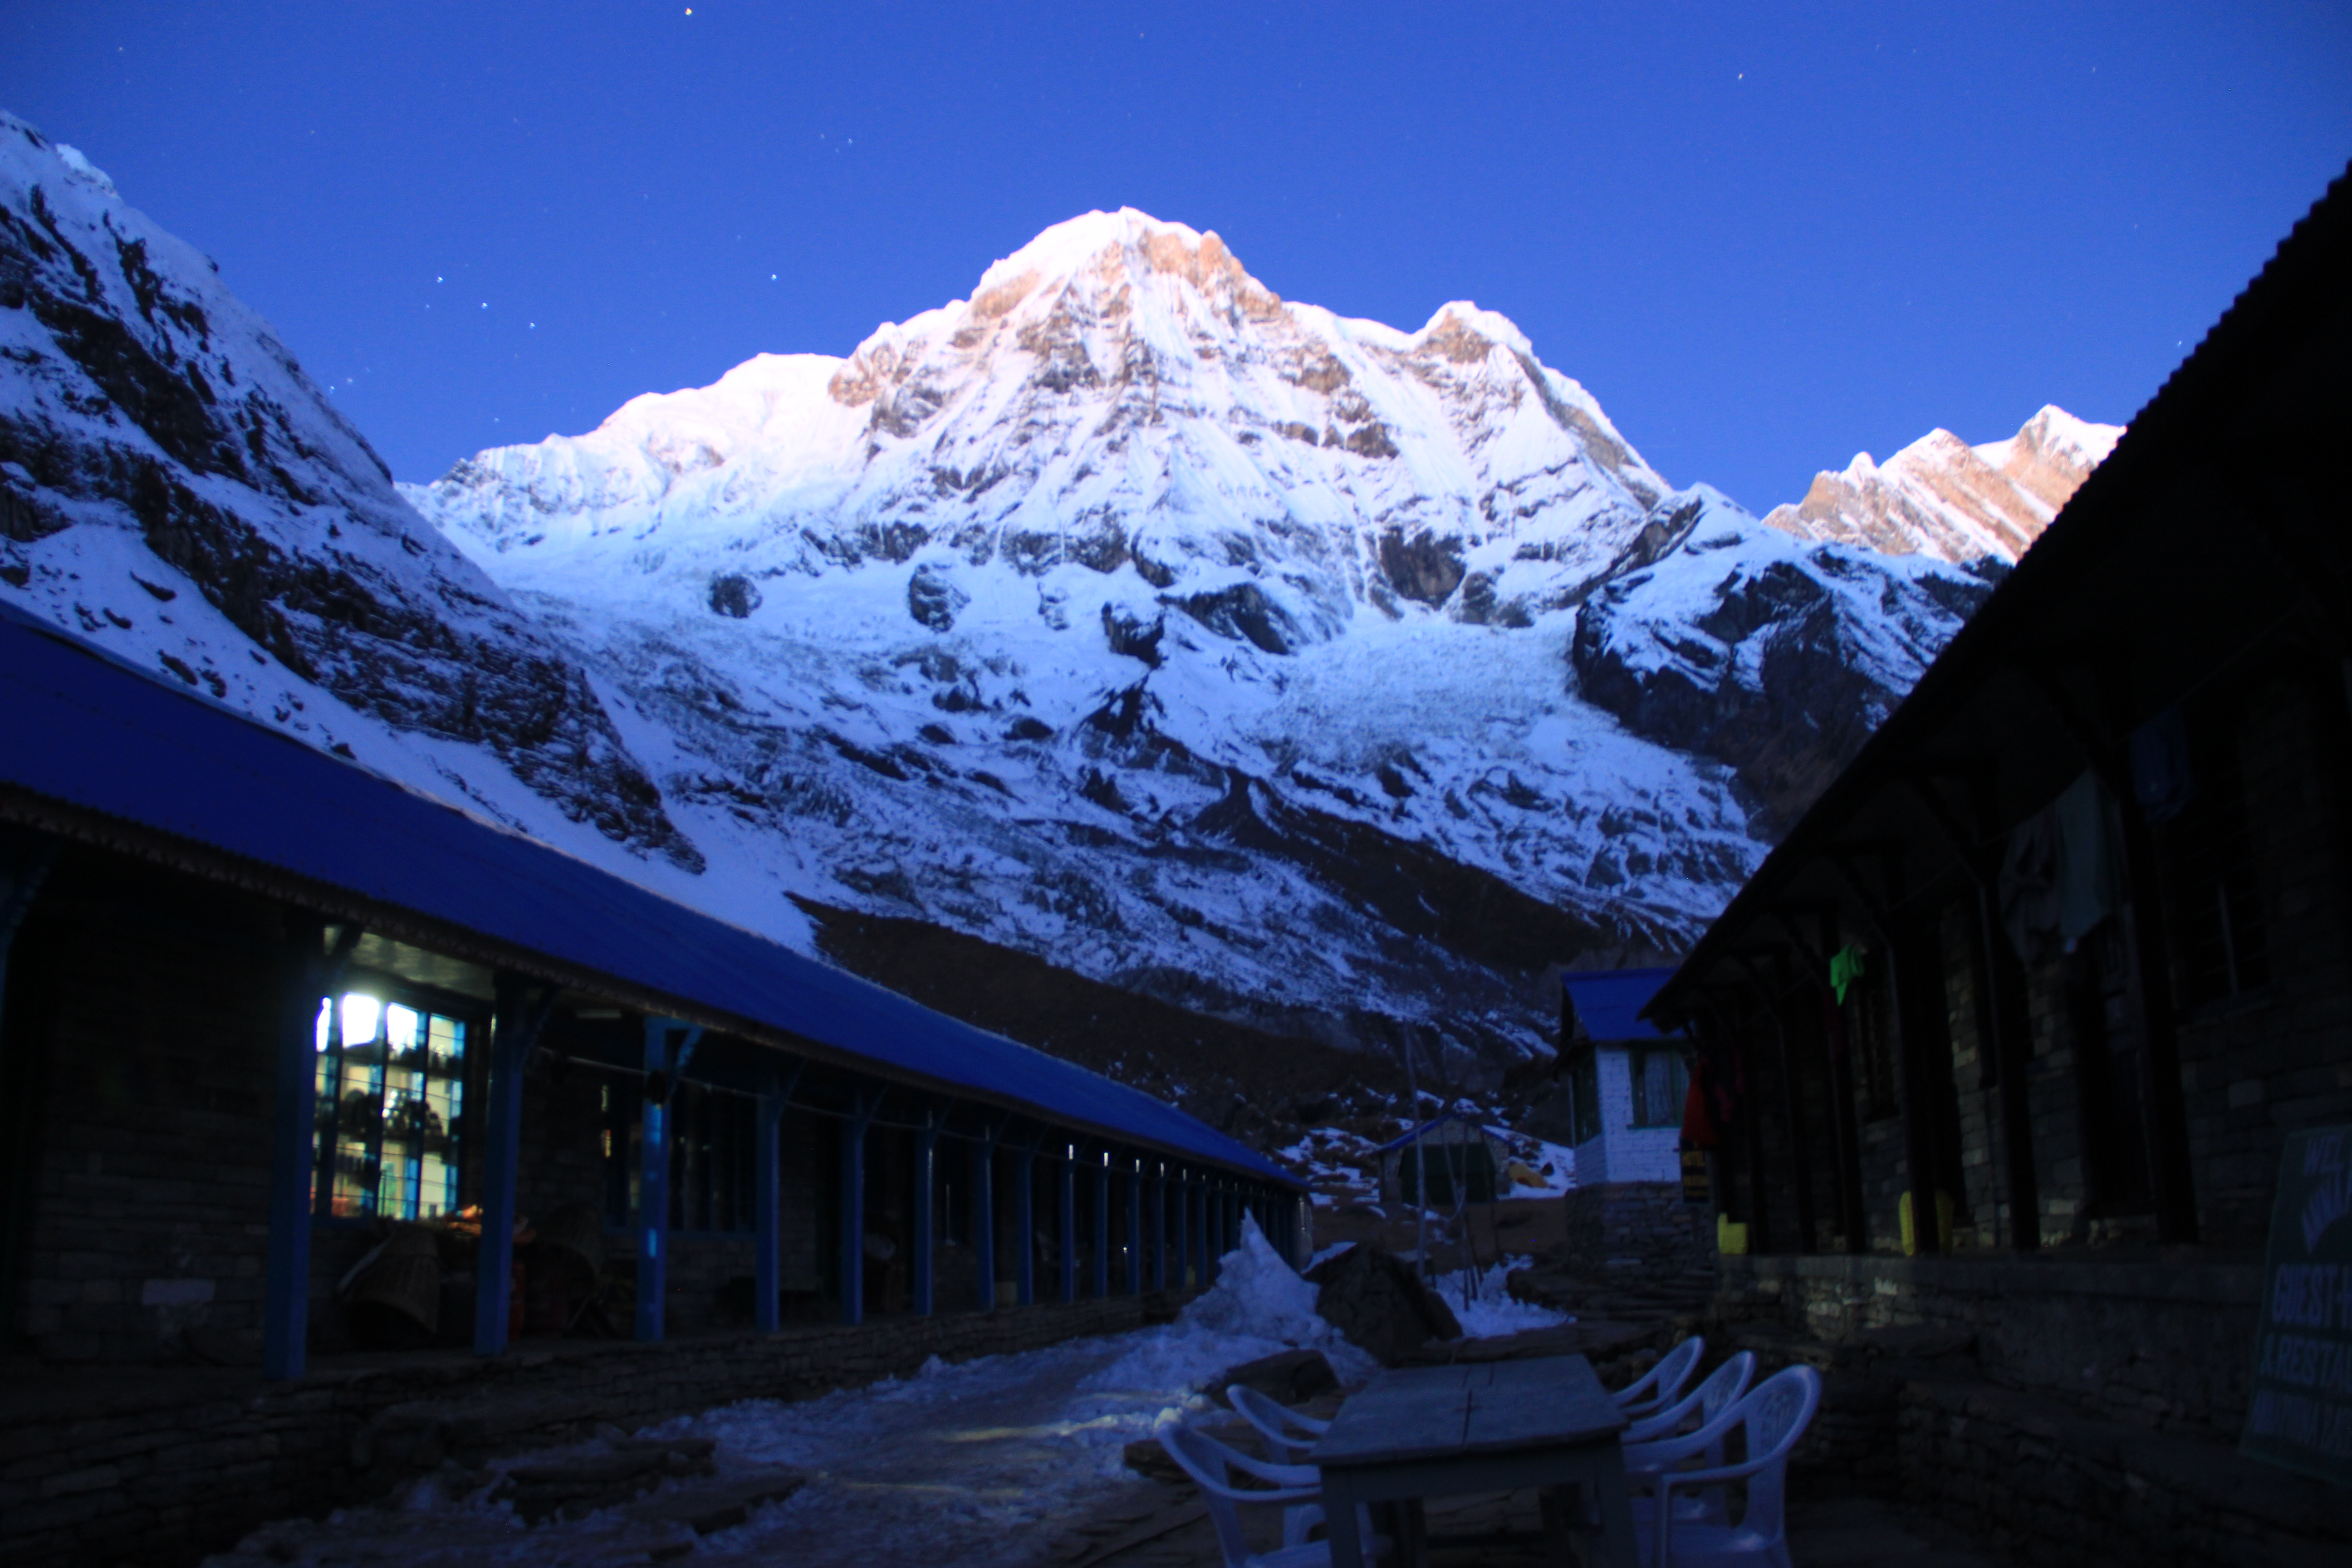 https://upload.wikimedia.org/wikipedia/commons/3/33/Annapurna_Base_Camp_(11).JPG